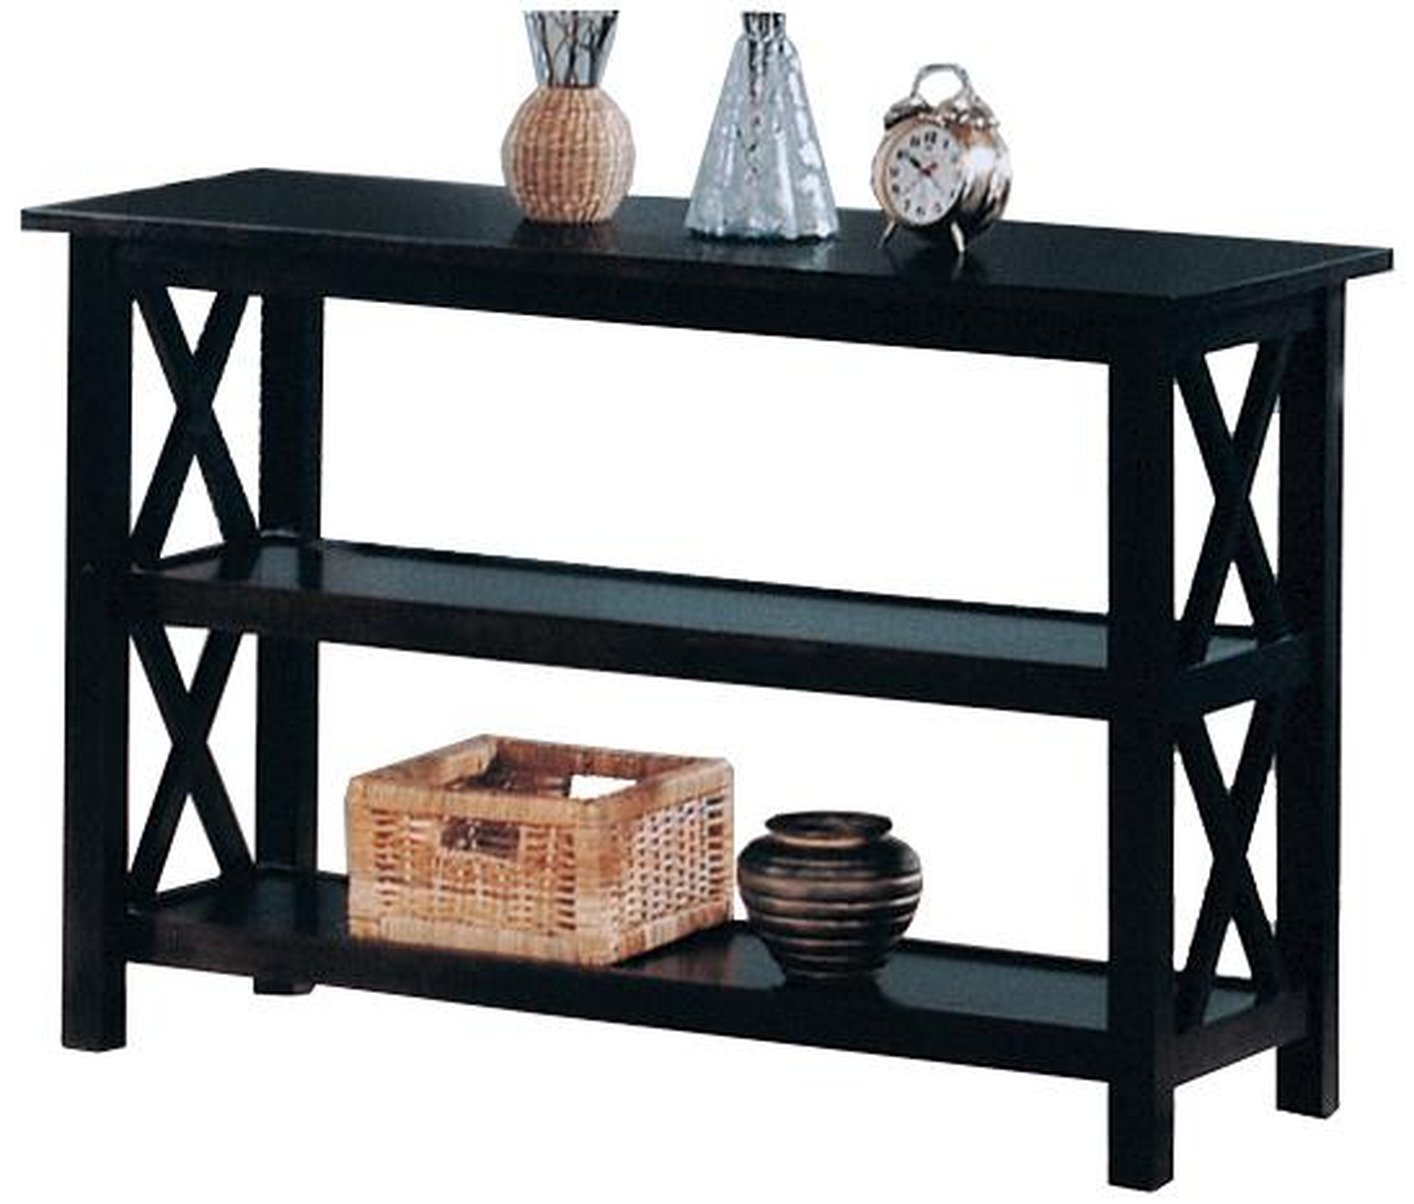 sofa console tables wood sectional on clearance black table steal a furniture outlet los